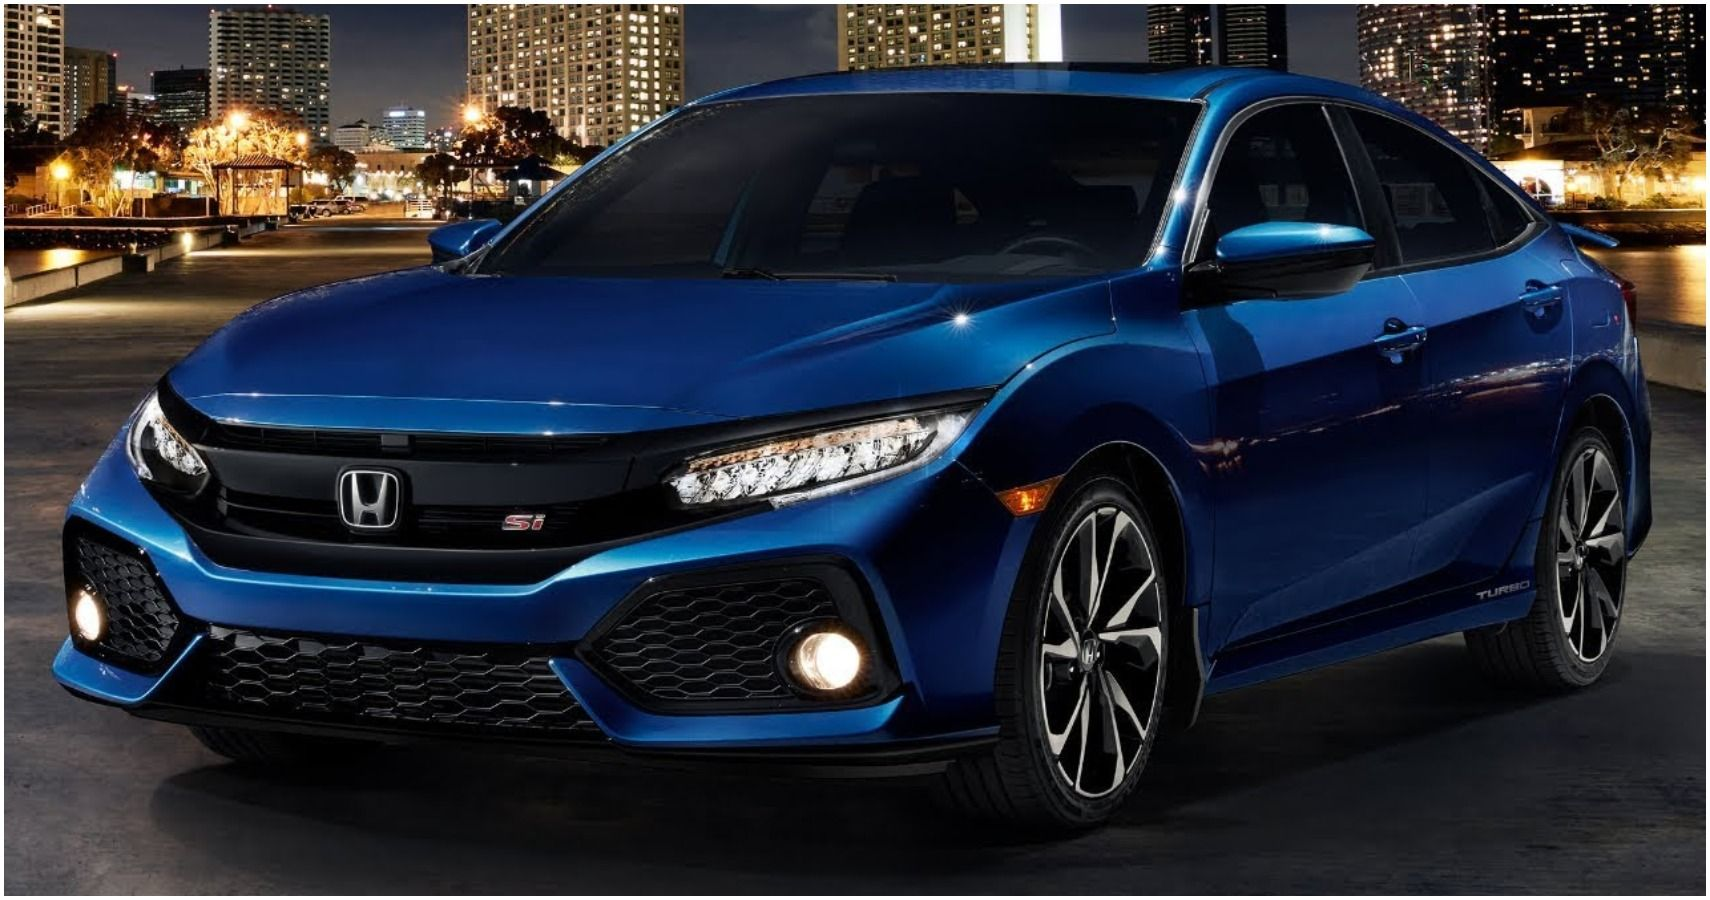 10 Best Japanese Cars On The Market in 2019, Ranked   HotCars